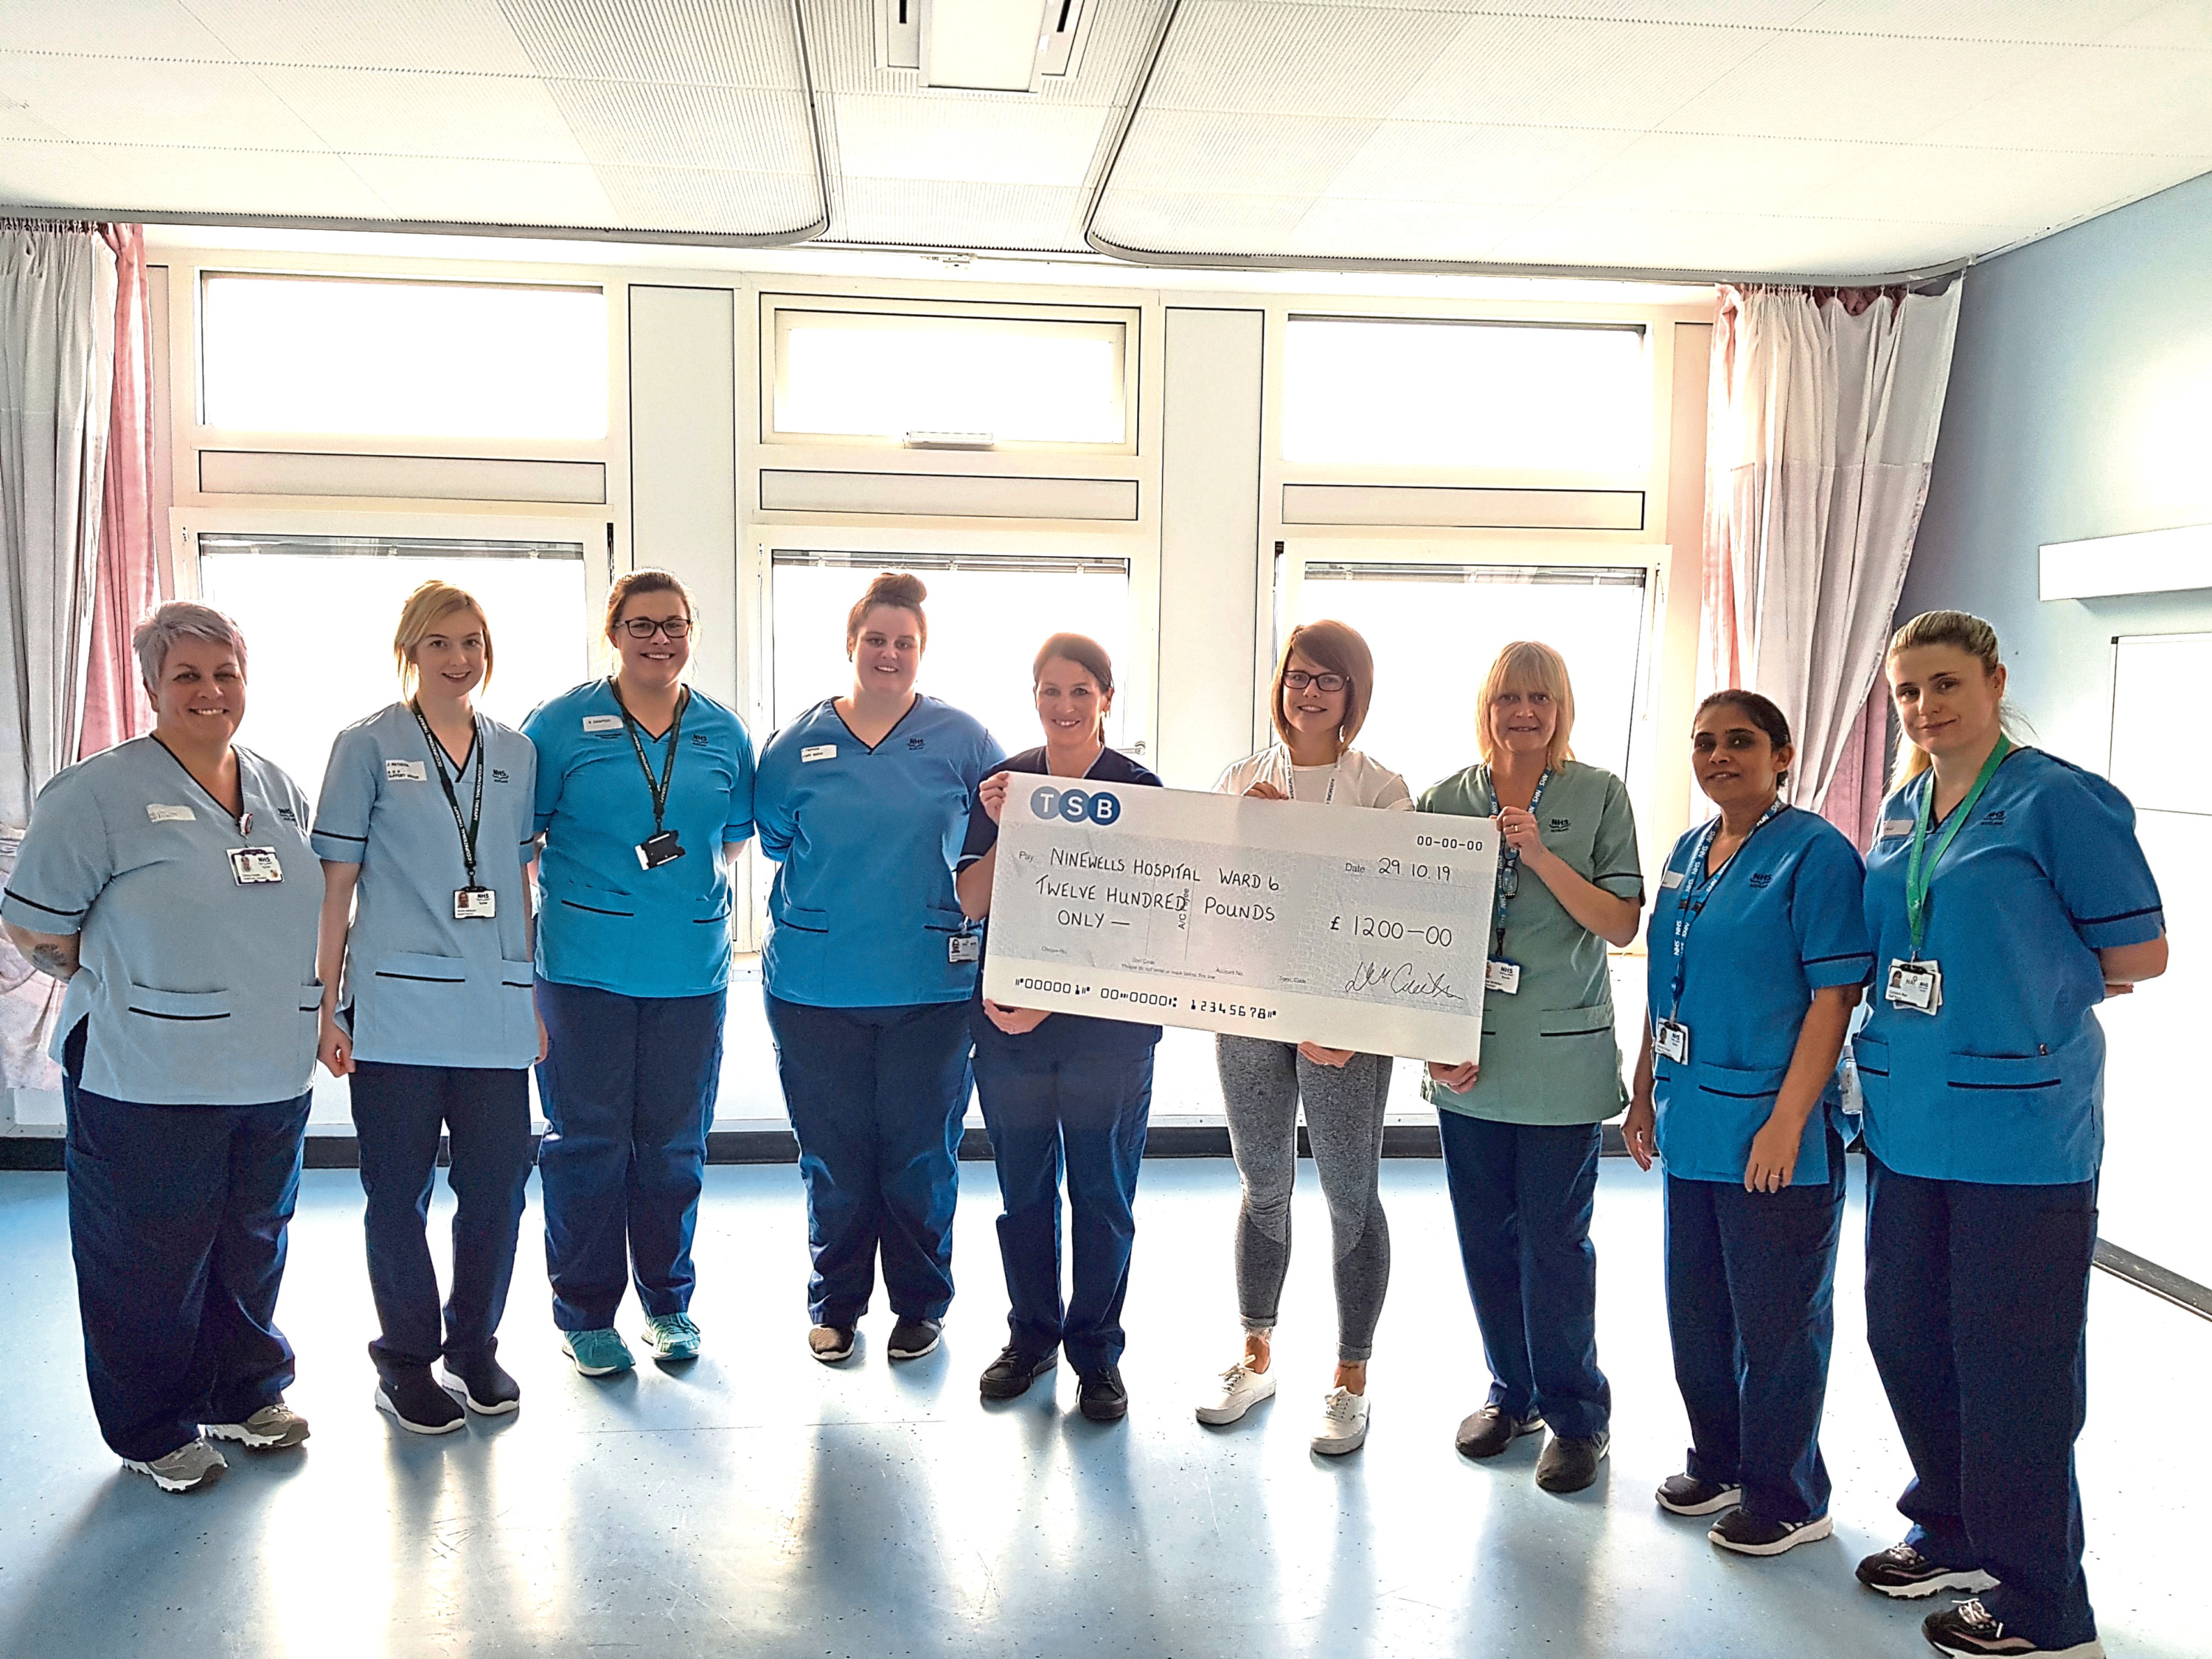 Jena Jamieson Dundee presenting the cheque to staff in Ward 6.